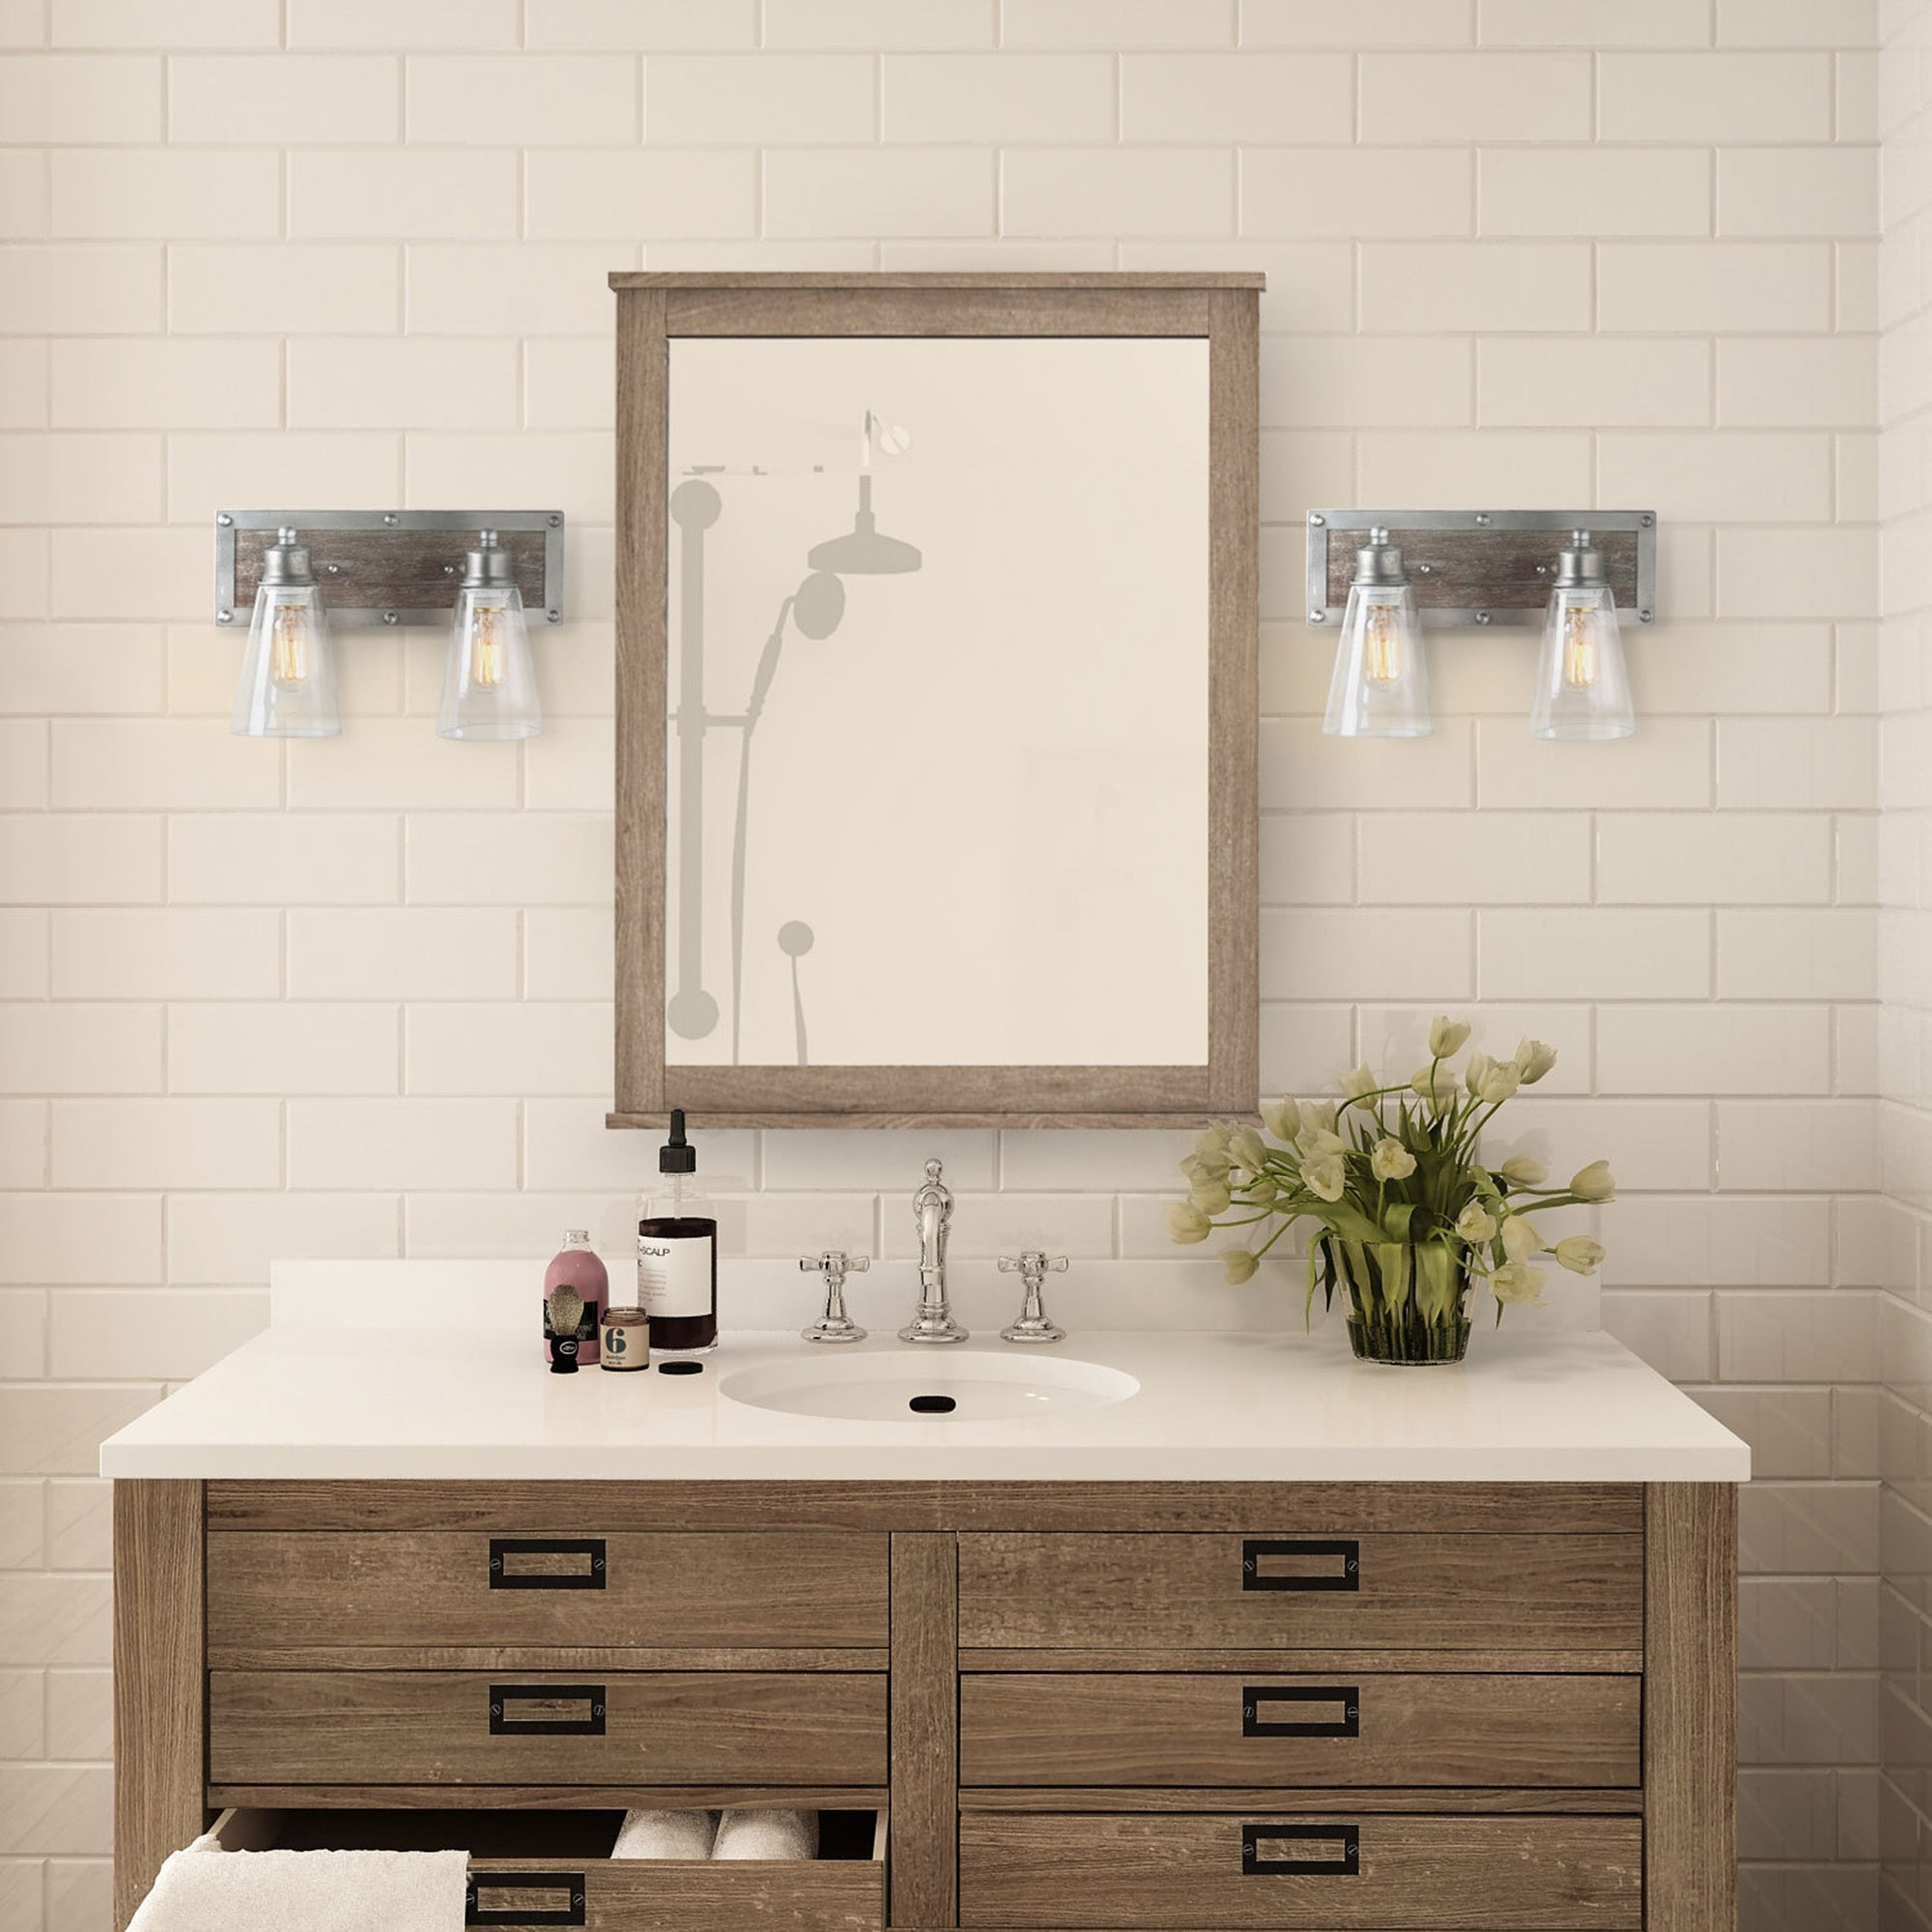 Shop For Rustic 2 Light Wood Wall Sconces Aged Silver Bathroom Vanity Wall Lights W14 X H9 X E6 7 Get Free Delivery On Everything At Overstock Your Online Kitchen Bath Lighting Store Get 5 In Rewards With Club O 25454830